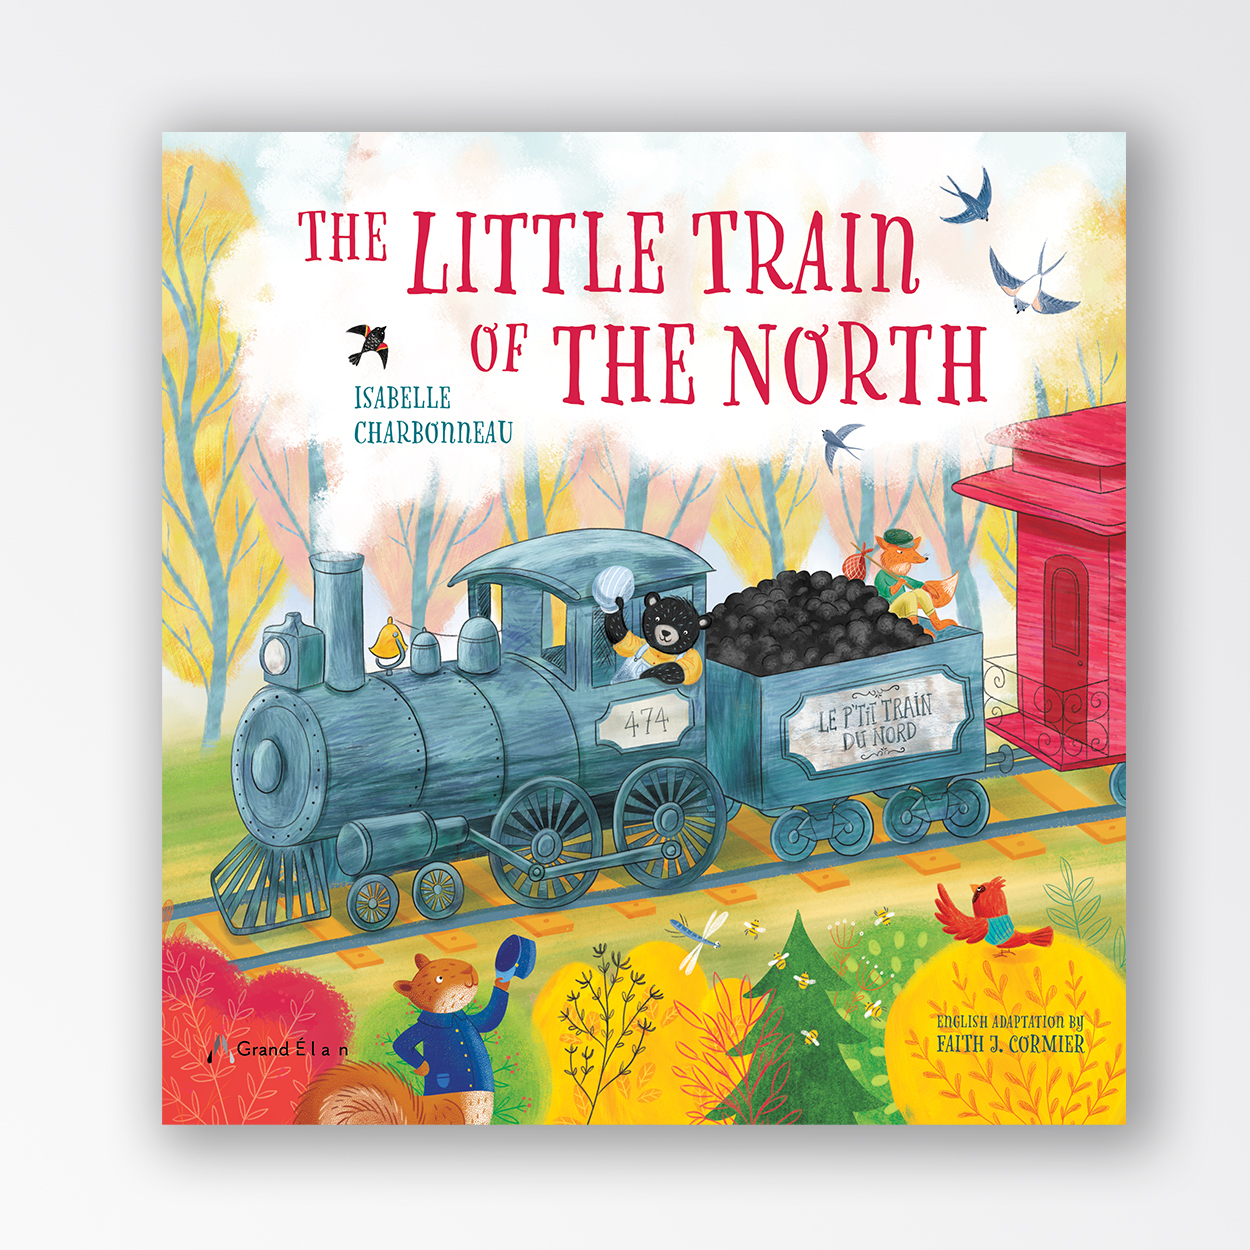 The Little Train of the North